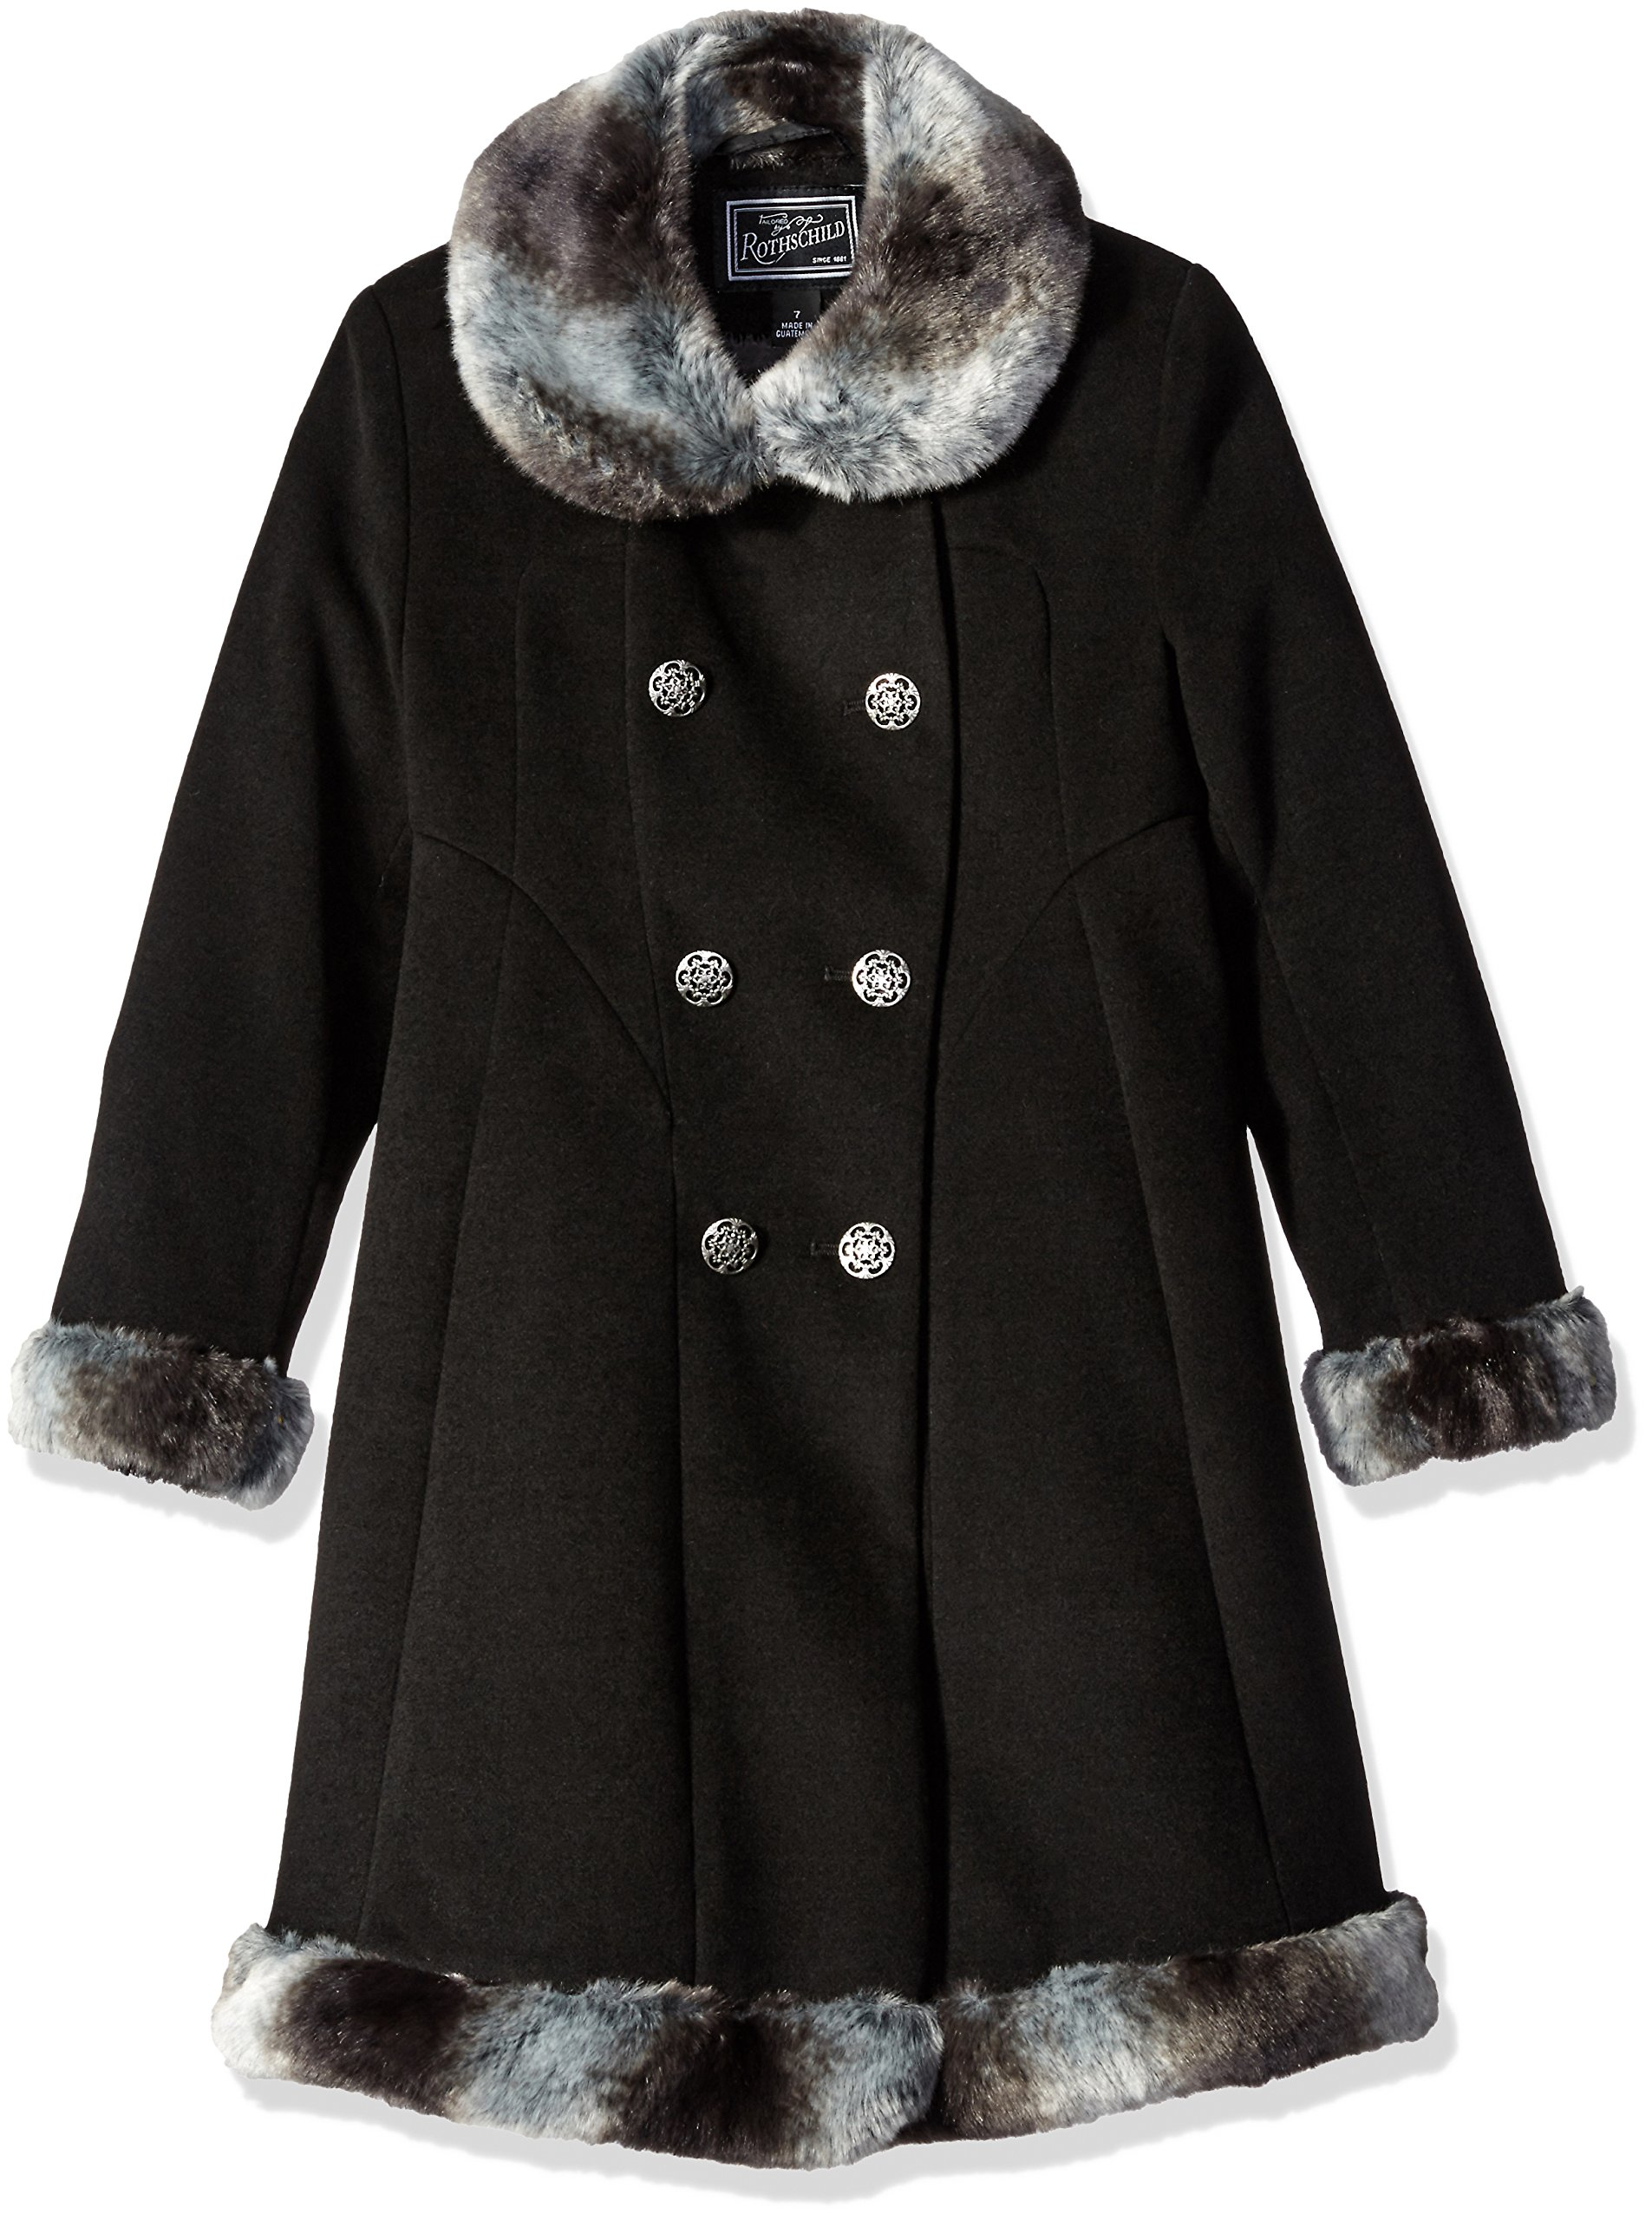 Rothschild Big Girls Faux Wool Skater Coat, Black, 14